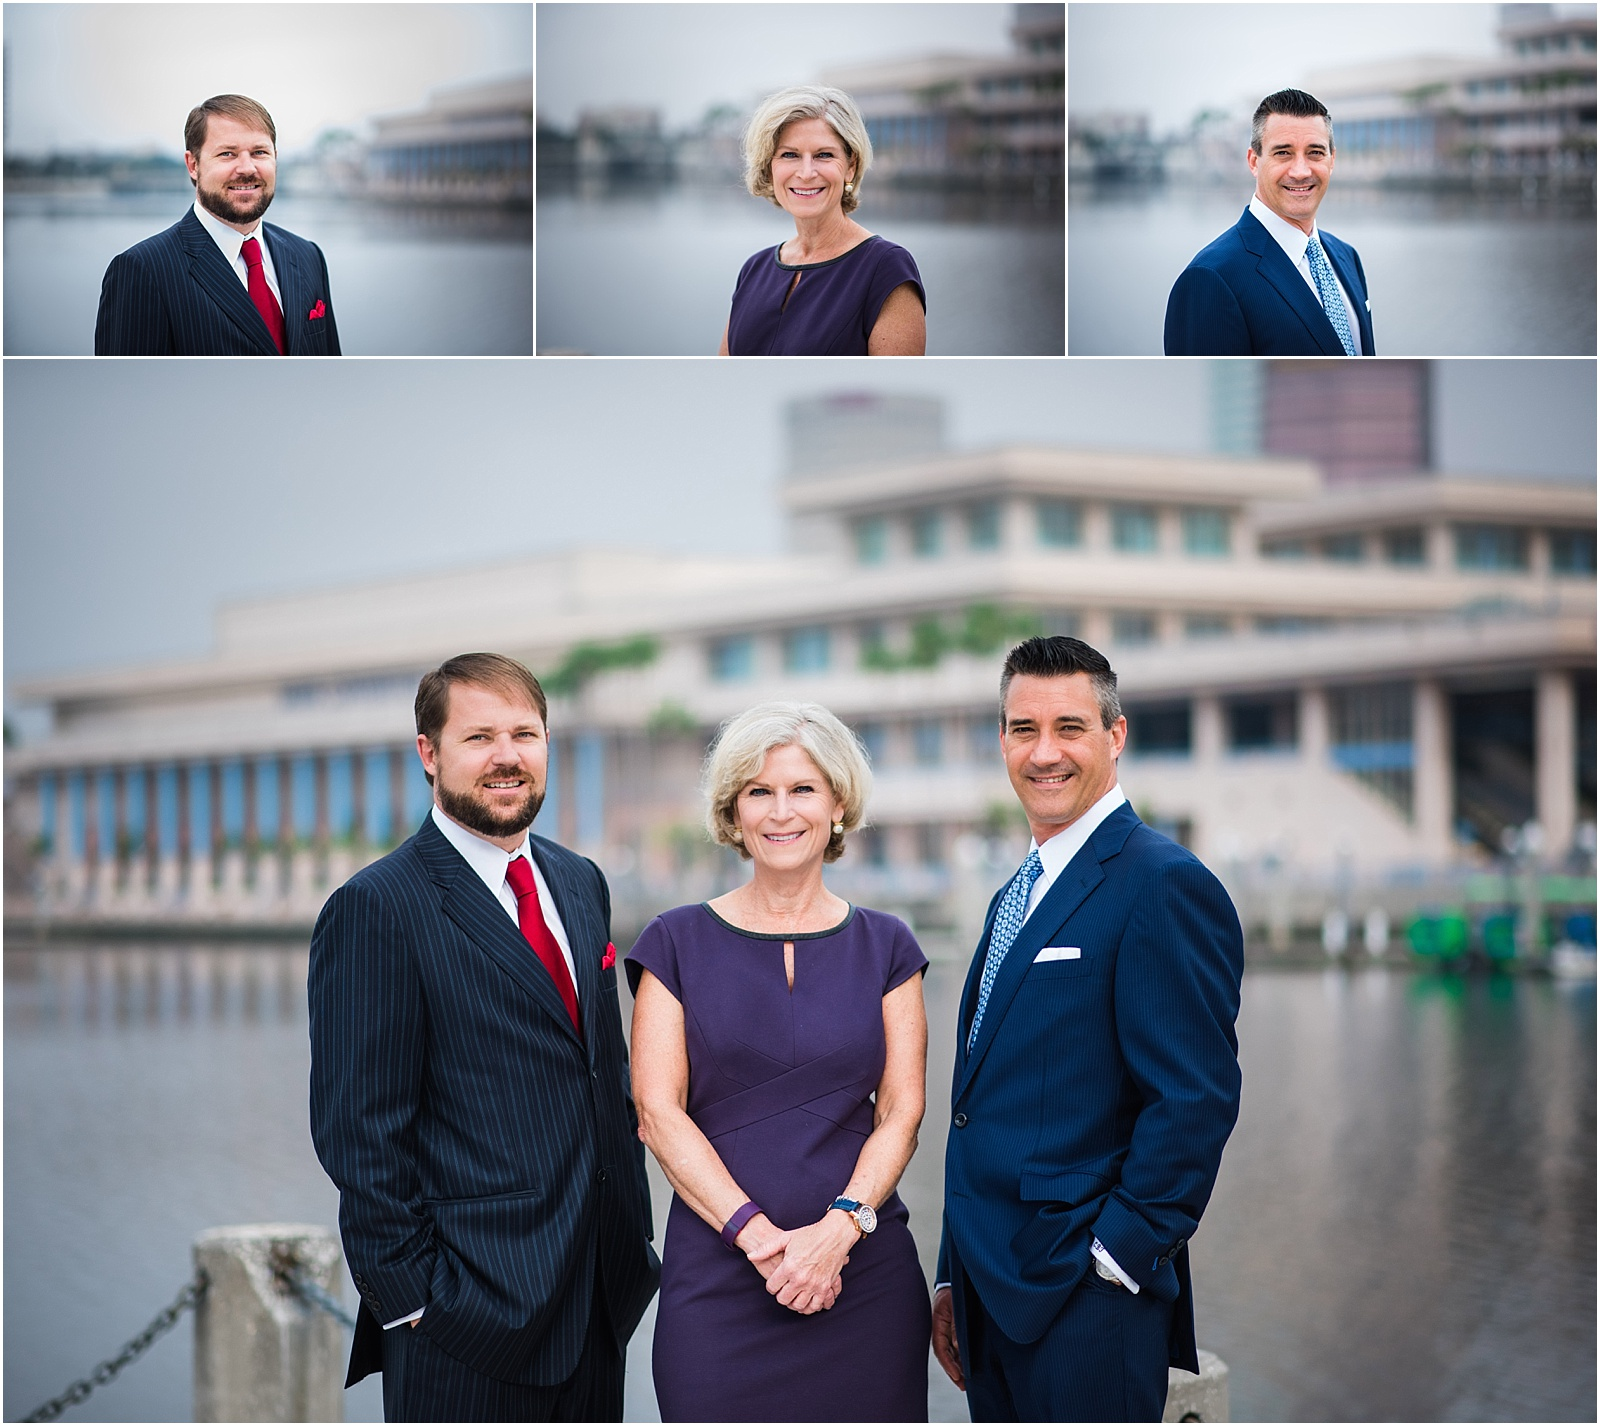 Businesses  Businesses interested in a welcoming and fresh look should consider outdoor headshots at any location just outside your office.  - Small Business: 2-5 people $100 each  - Medium Business 6-15 people $75 each  Each associate will receive 5-8 retouched photos using various outdoor backgrounds.